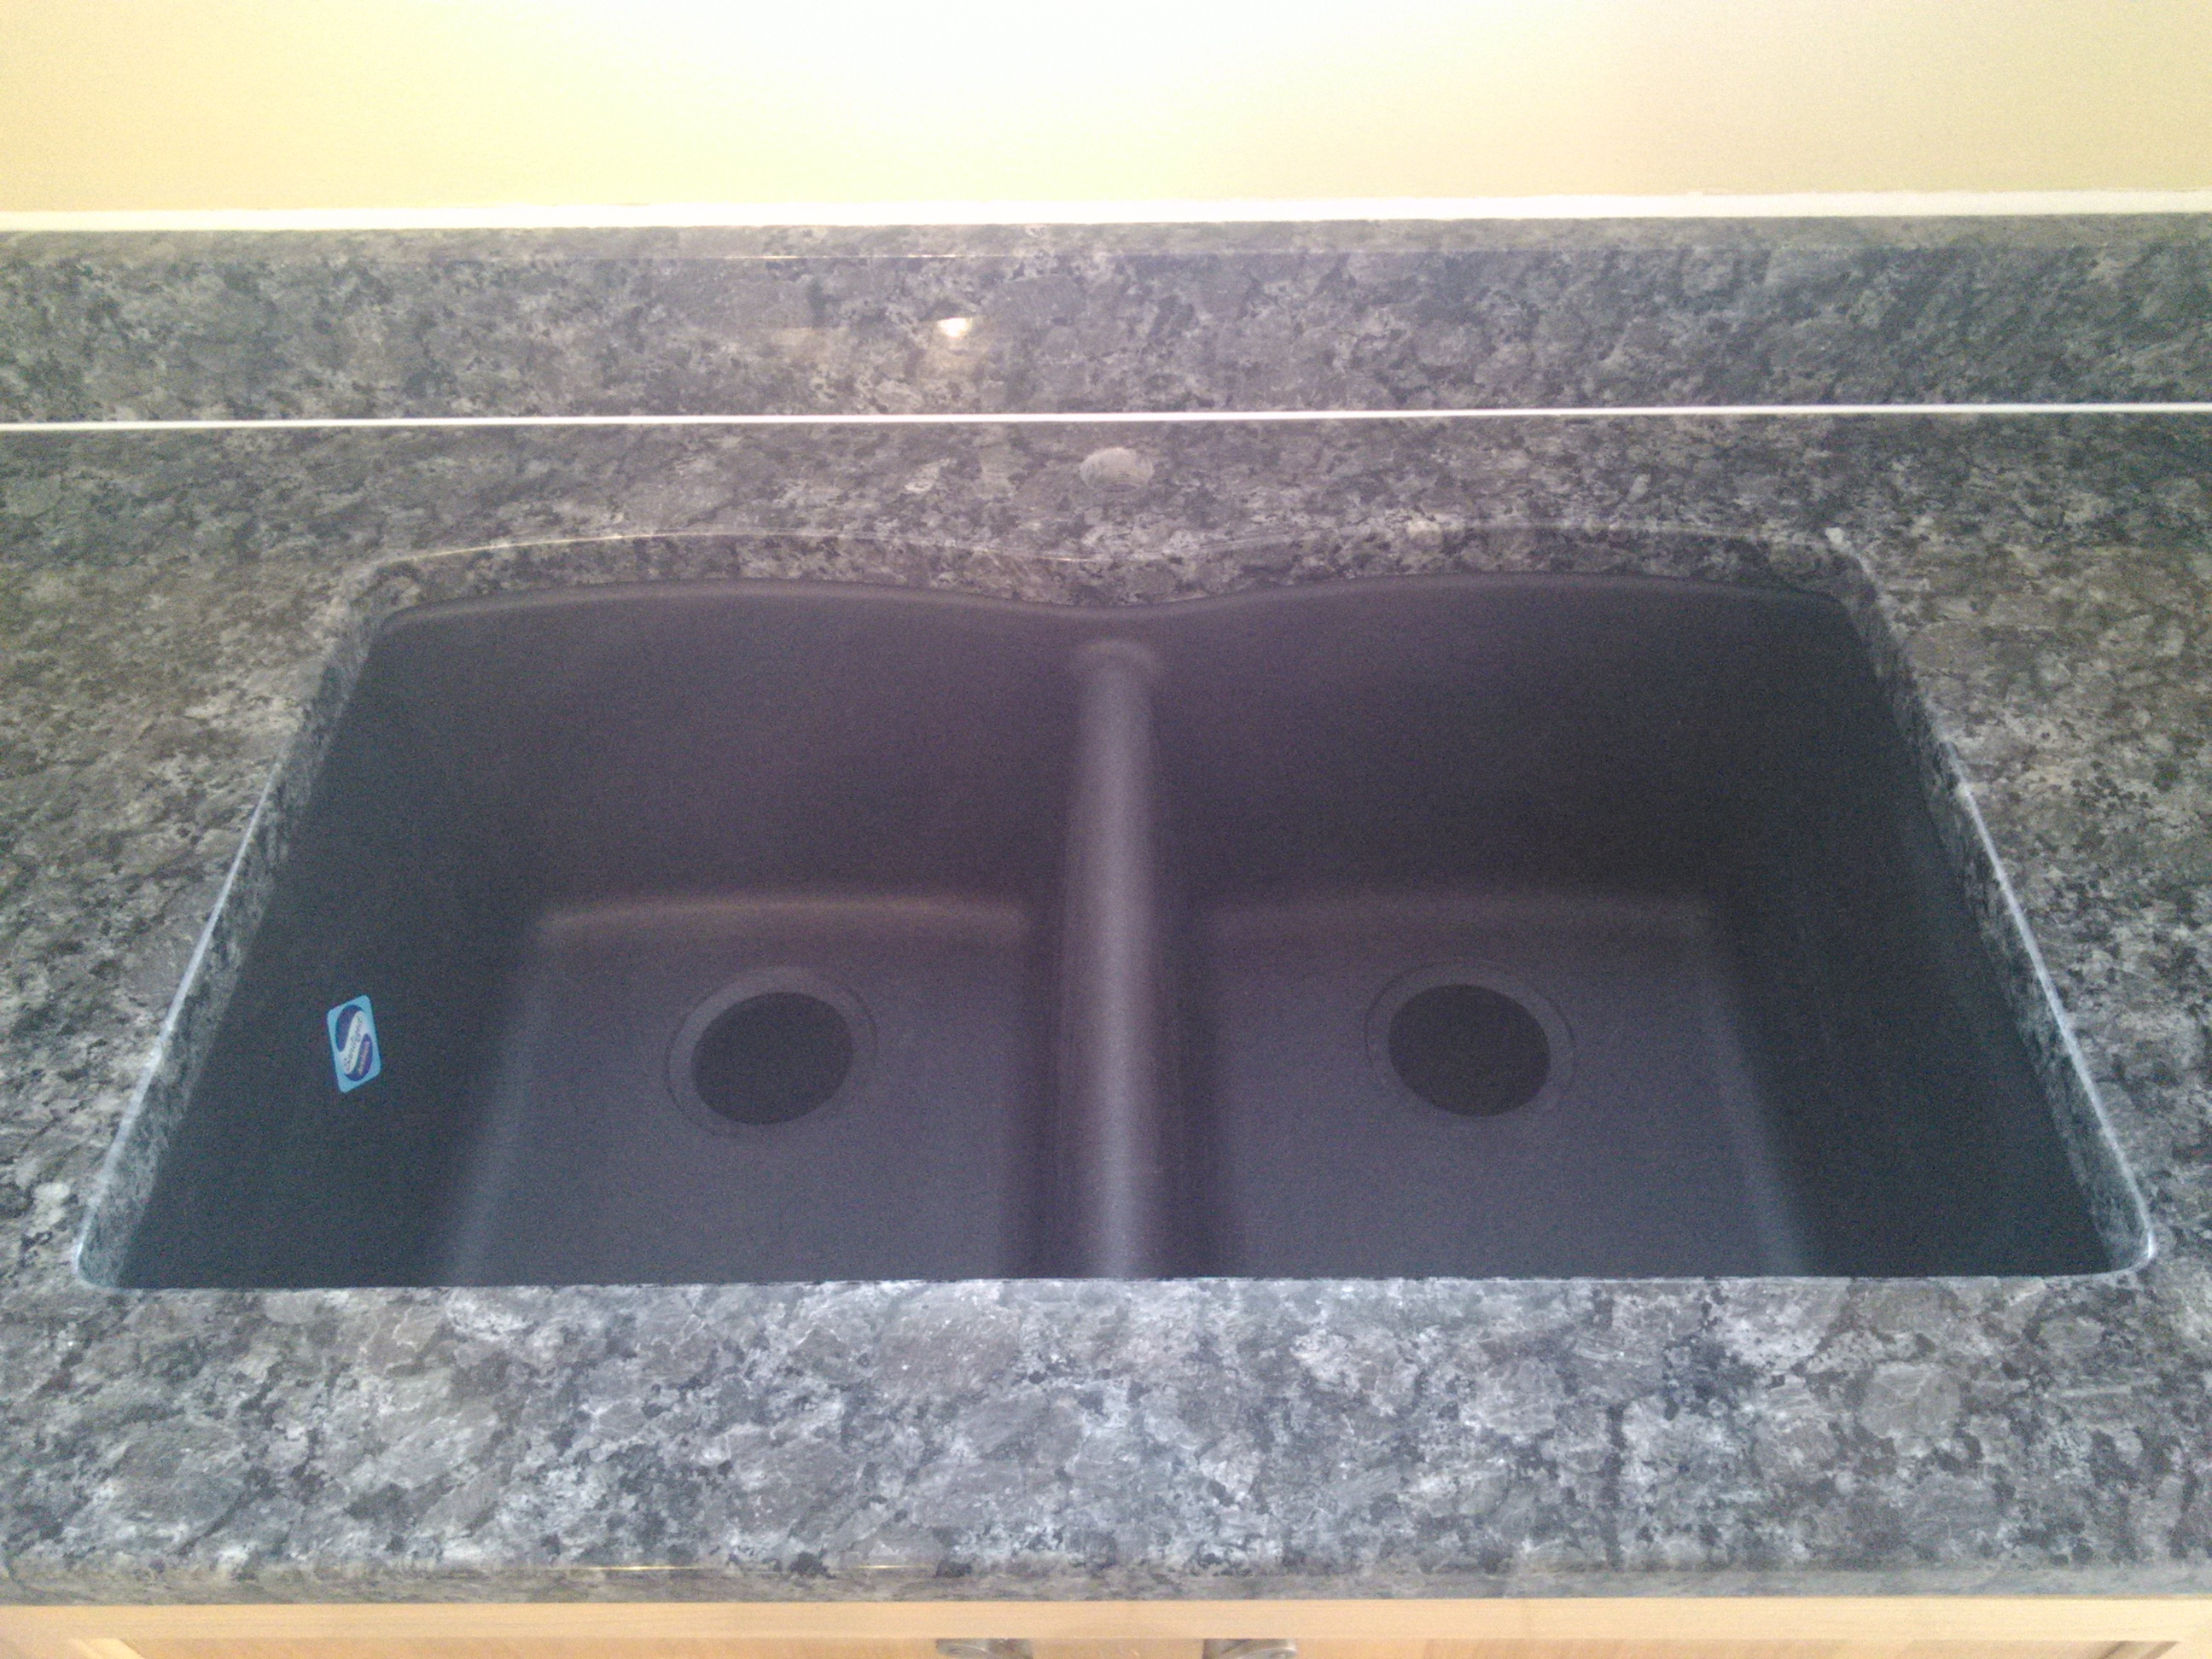 Granite Countertops Cincinnati Ohio G F C Granite Fabricator Of Cincinnati West Chester Ohio